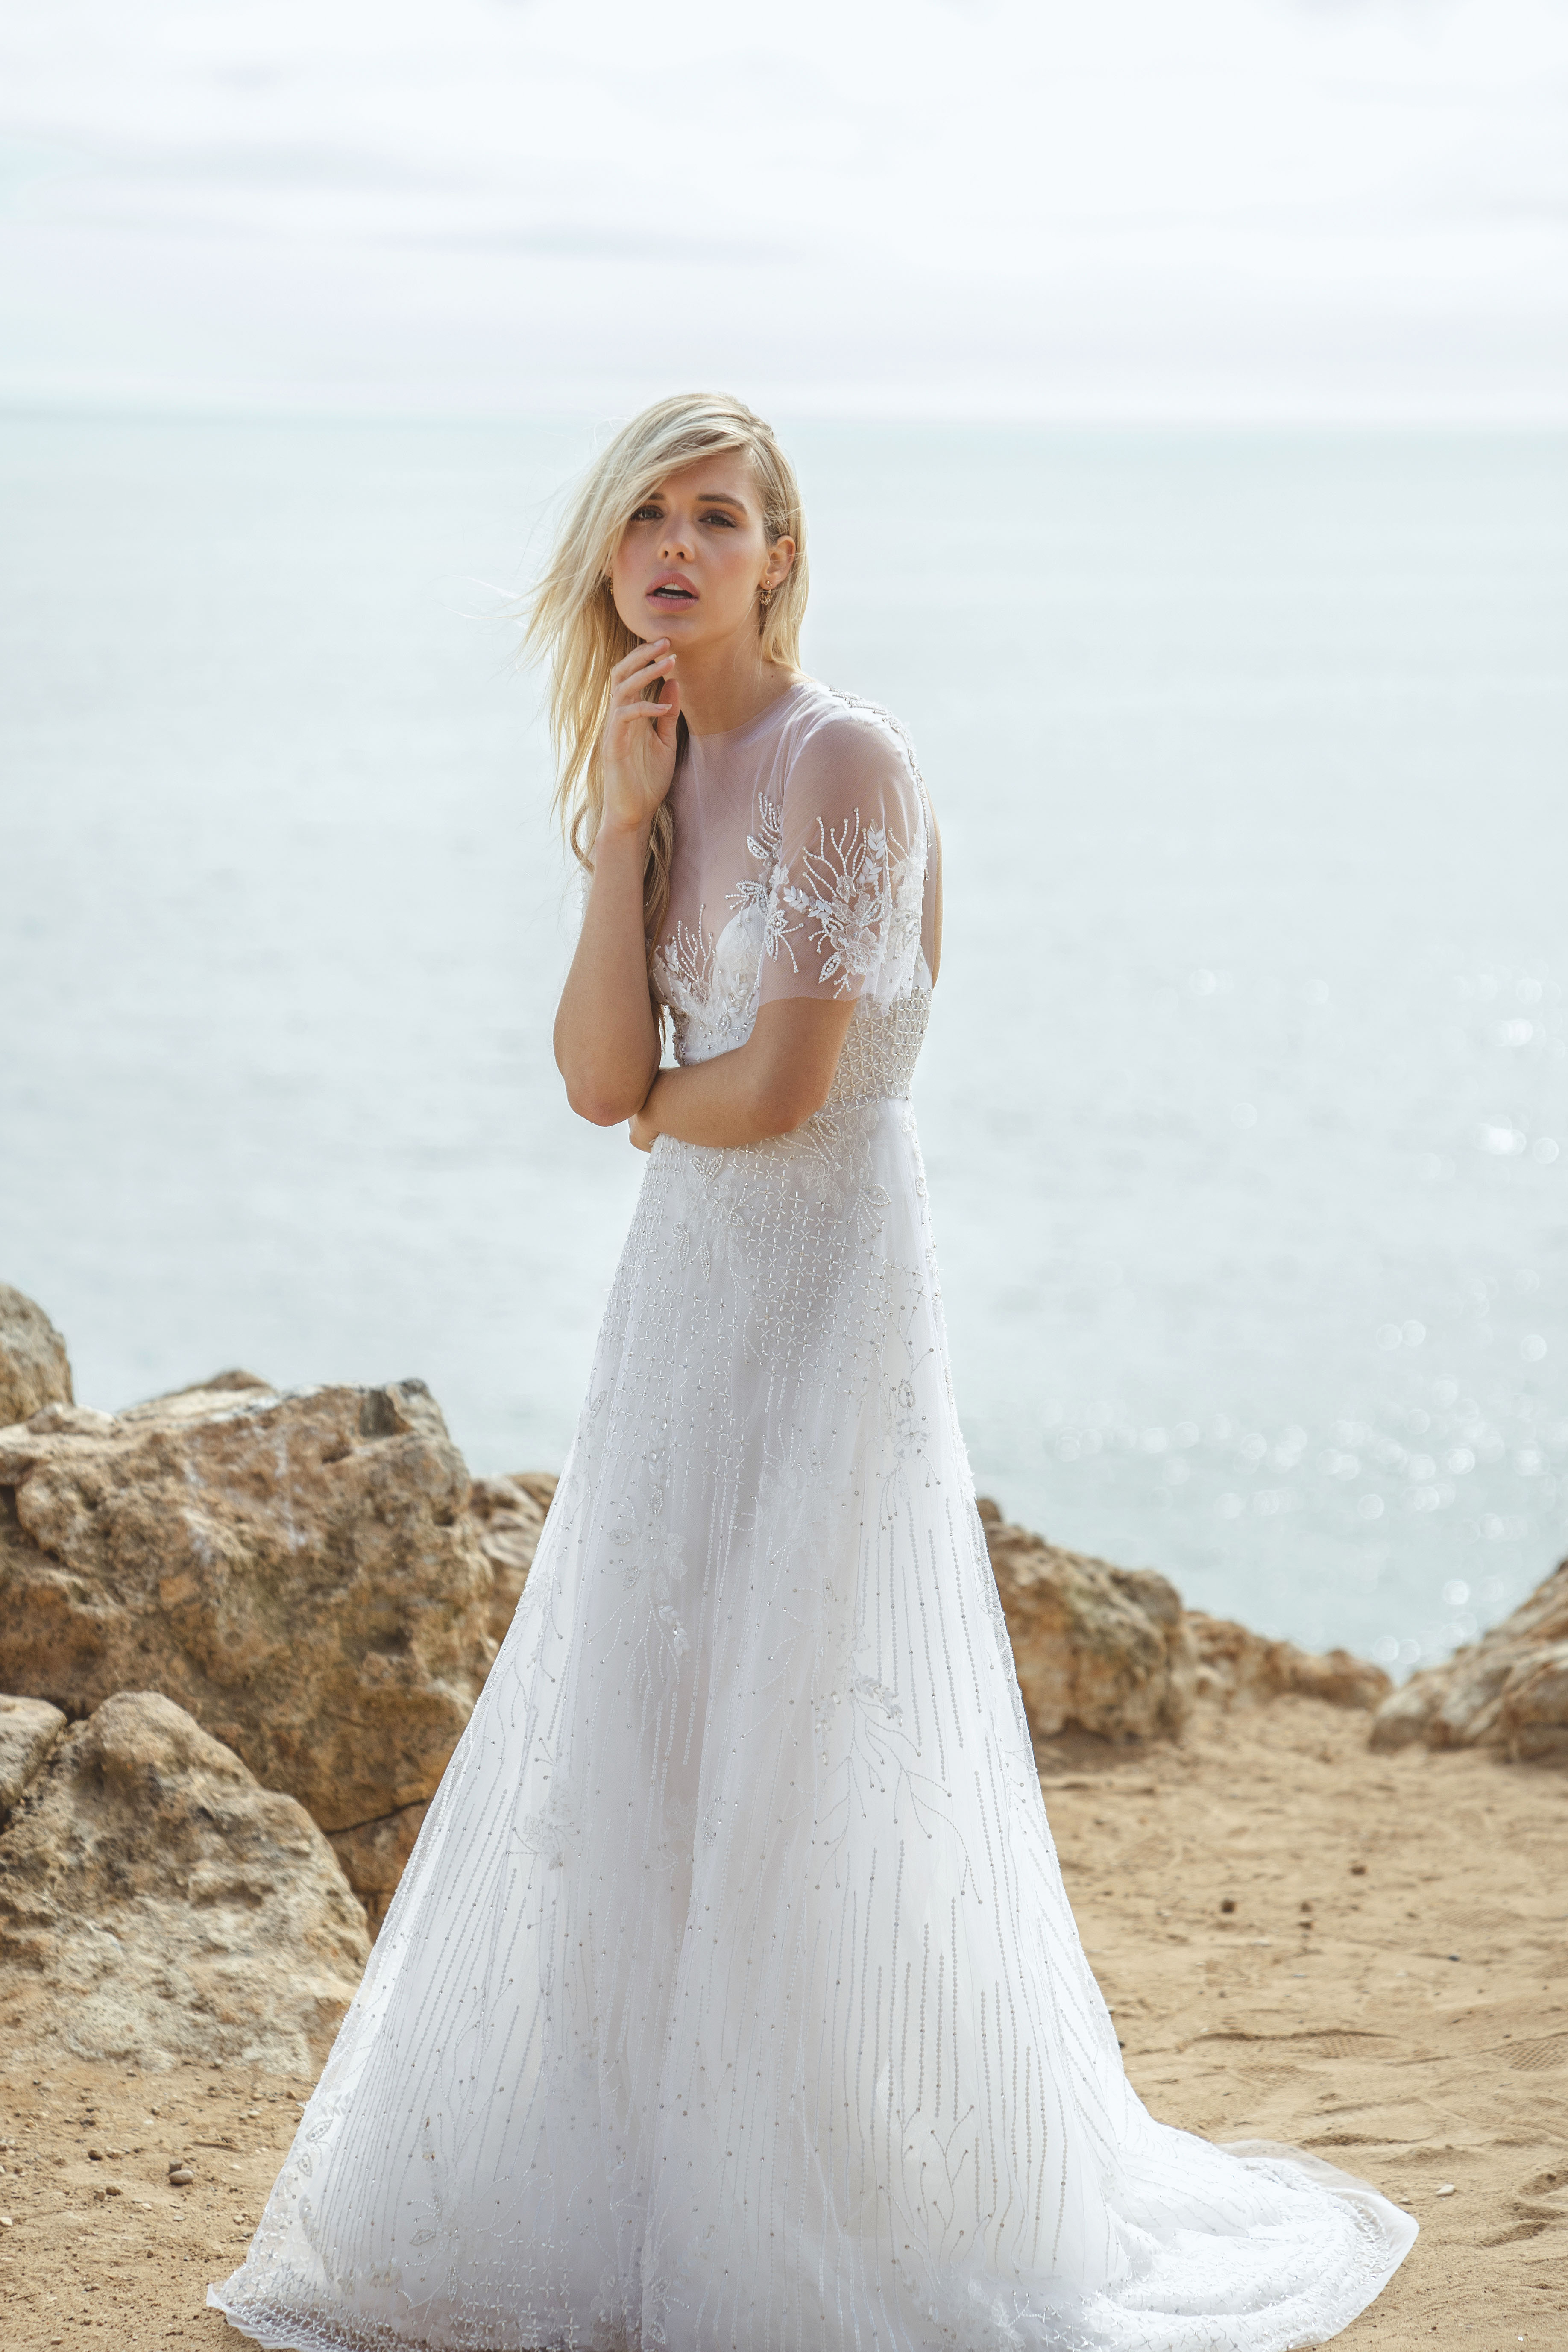 sabrina dahan short sleeves sheer a-line wedding dress spring 2018